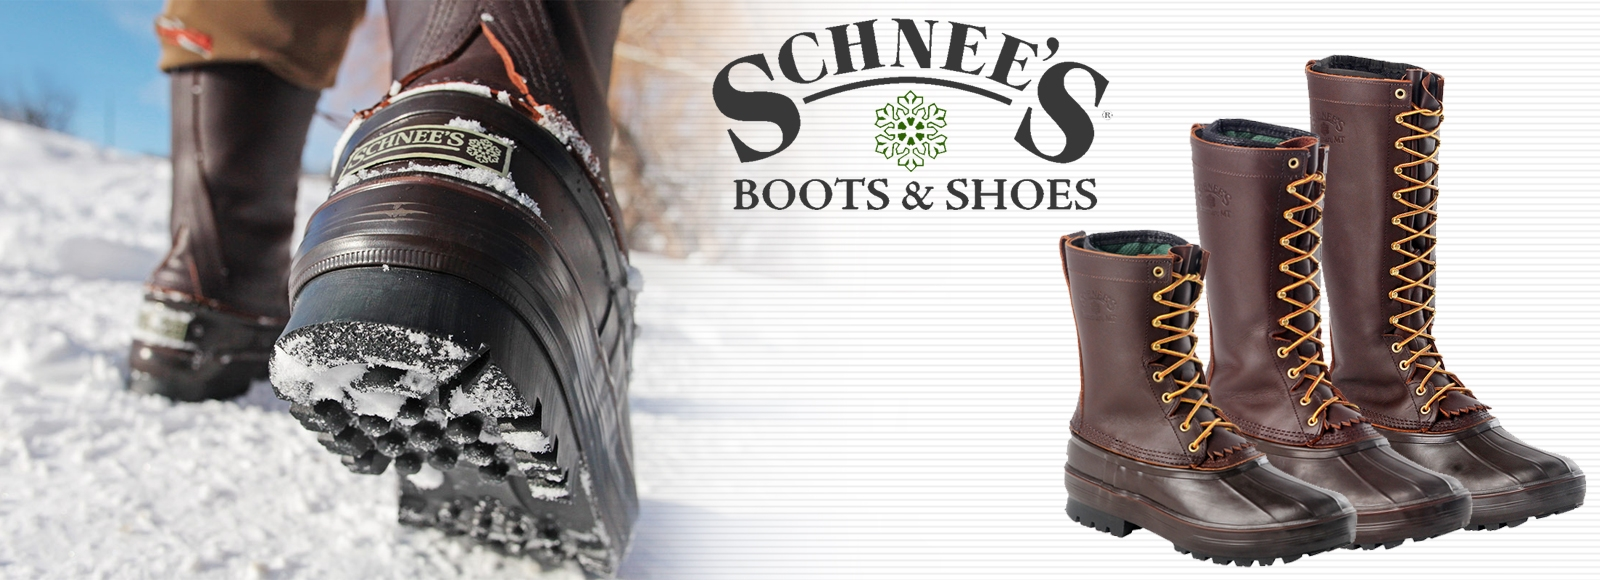 Schnee's Mountaineering PAC Boots